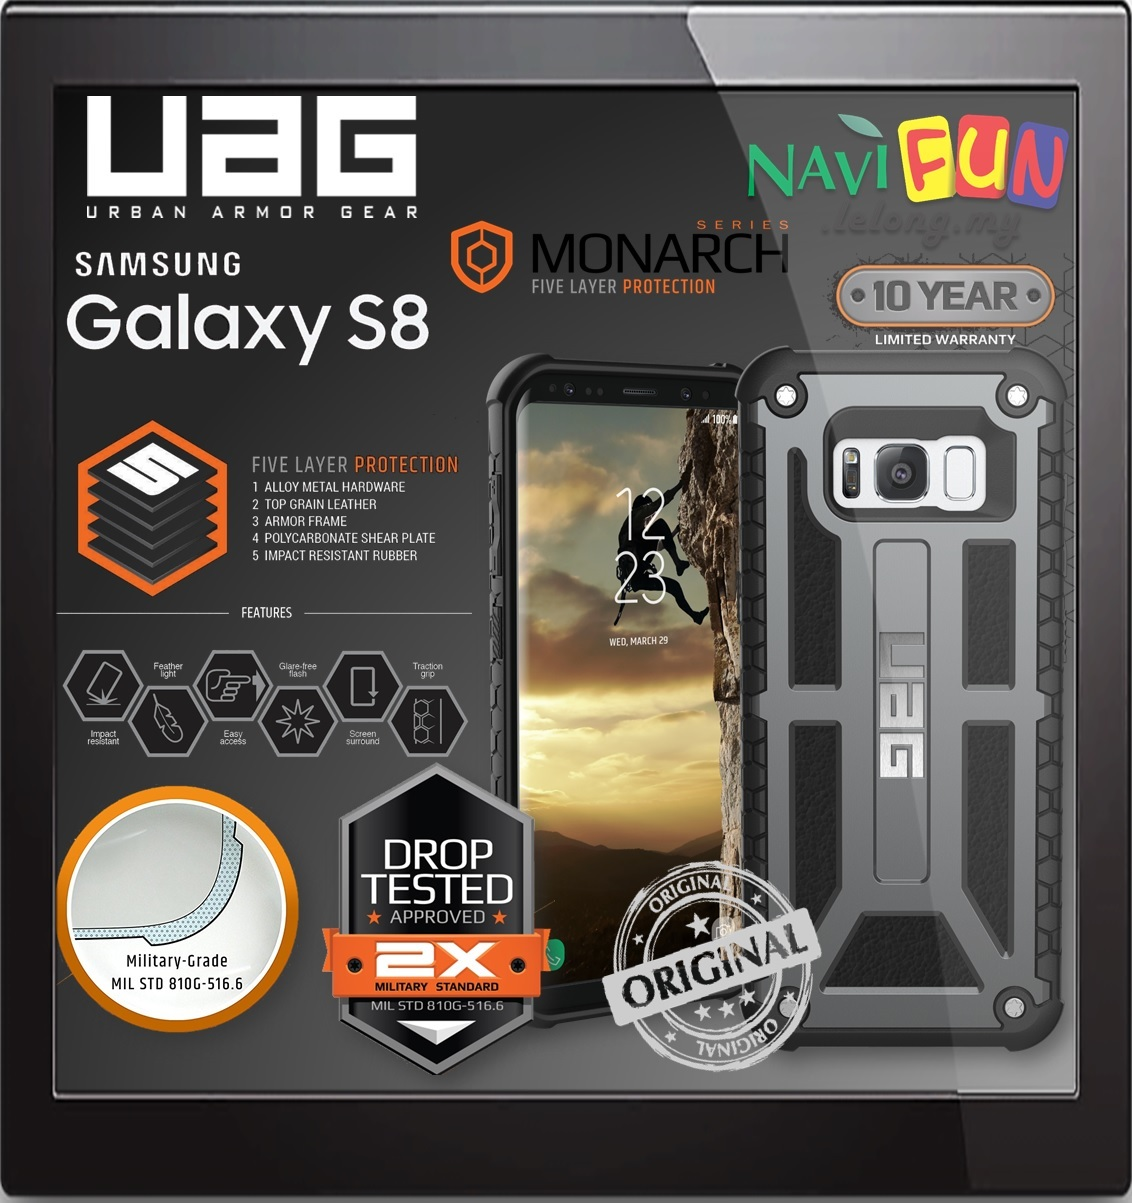 Galaxy s6 cases shop samsung cases online uag urban armor gear - Urban Armor Gear Uag Monarch Case For Samsung Galaxy S8